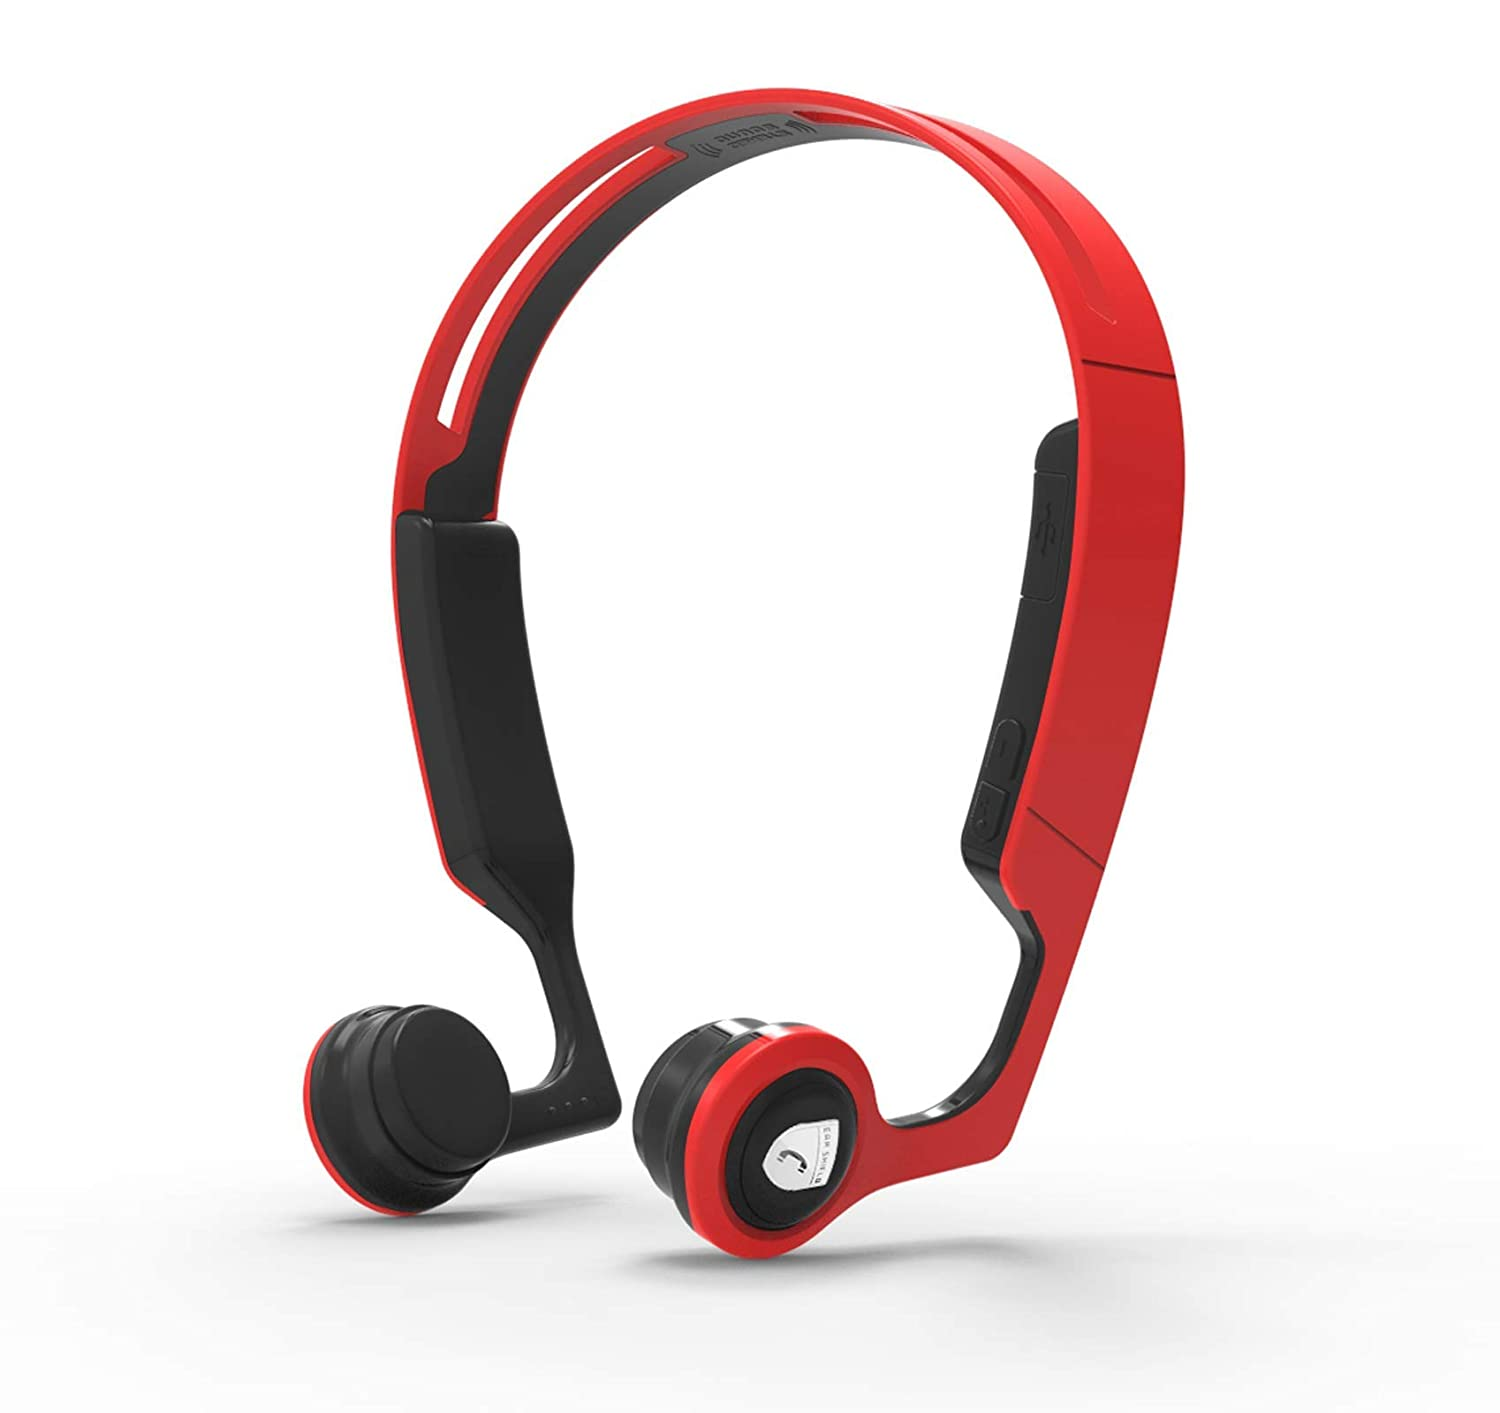 Lian LifeStyle Premium Bone Conduction Headphones Lightweight & Waterproof w/Mic & Bluetooth. Wireless Over Ear Headset for Adults and Kids, Suitable for Sports, Gaming, Travel, Office (Red w/Black)